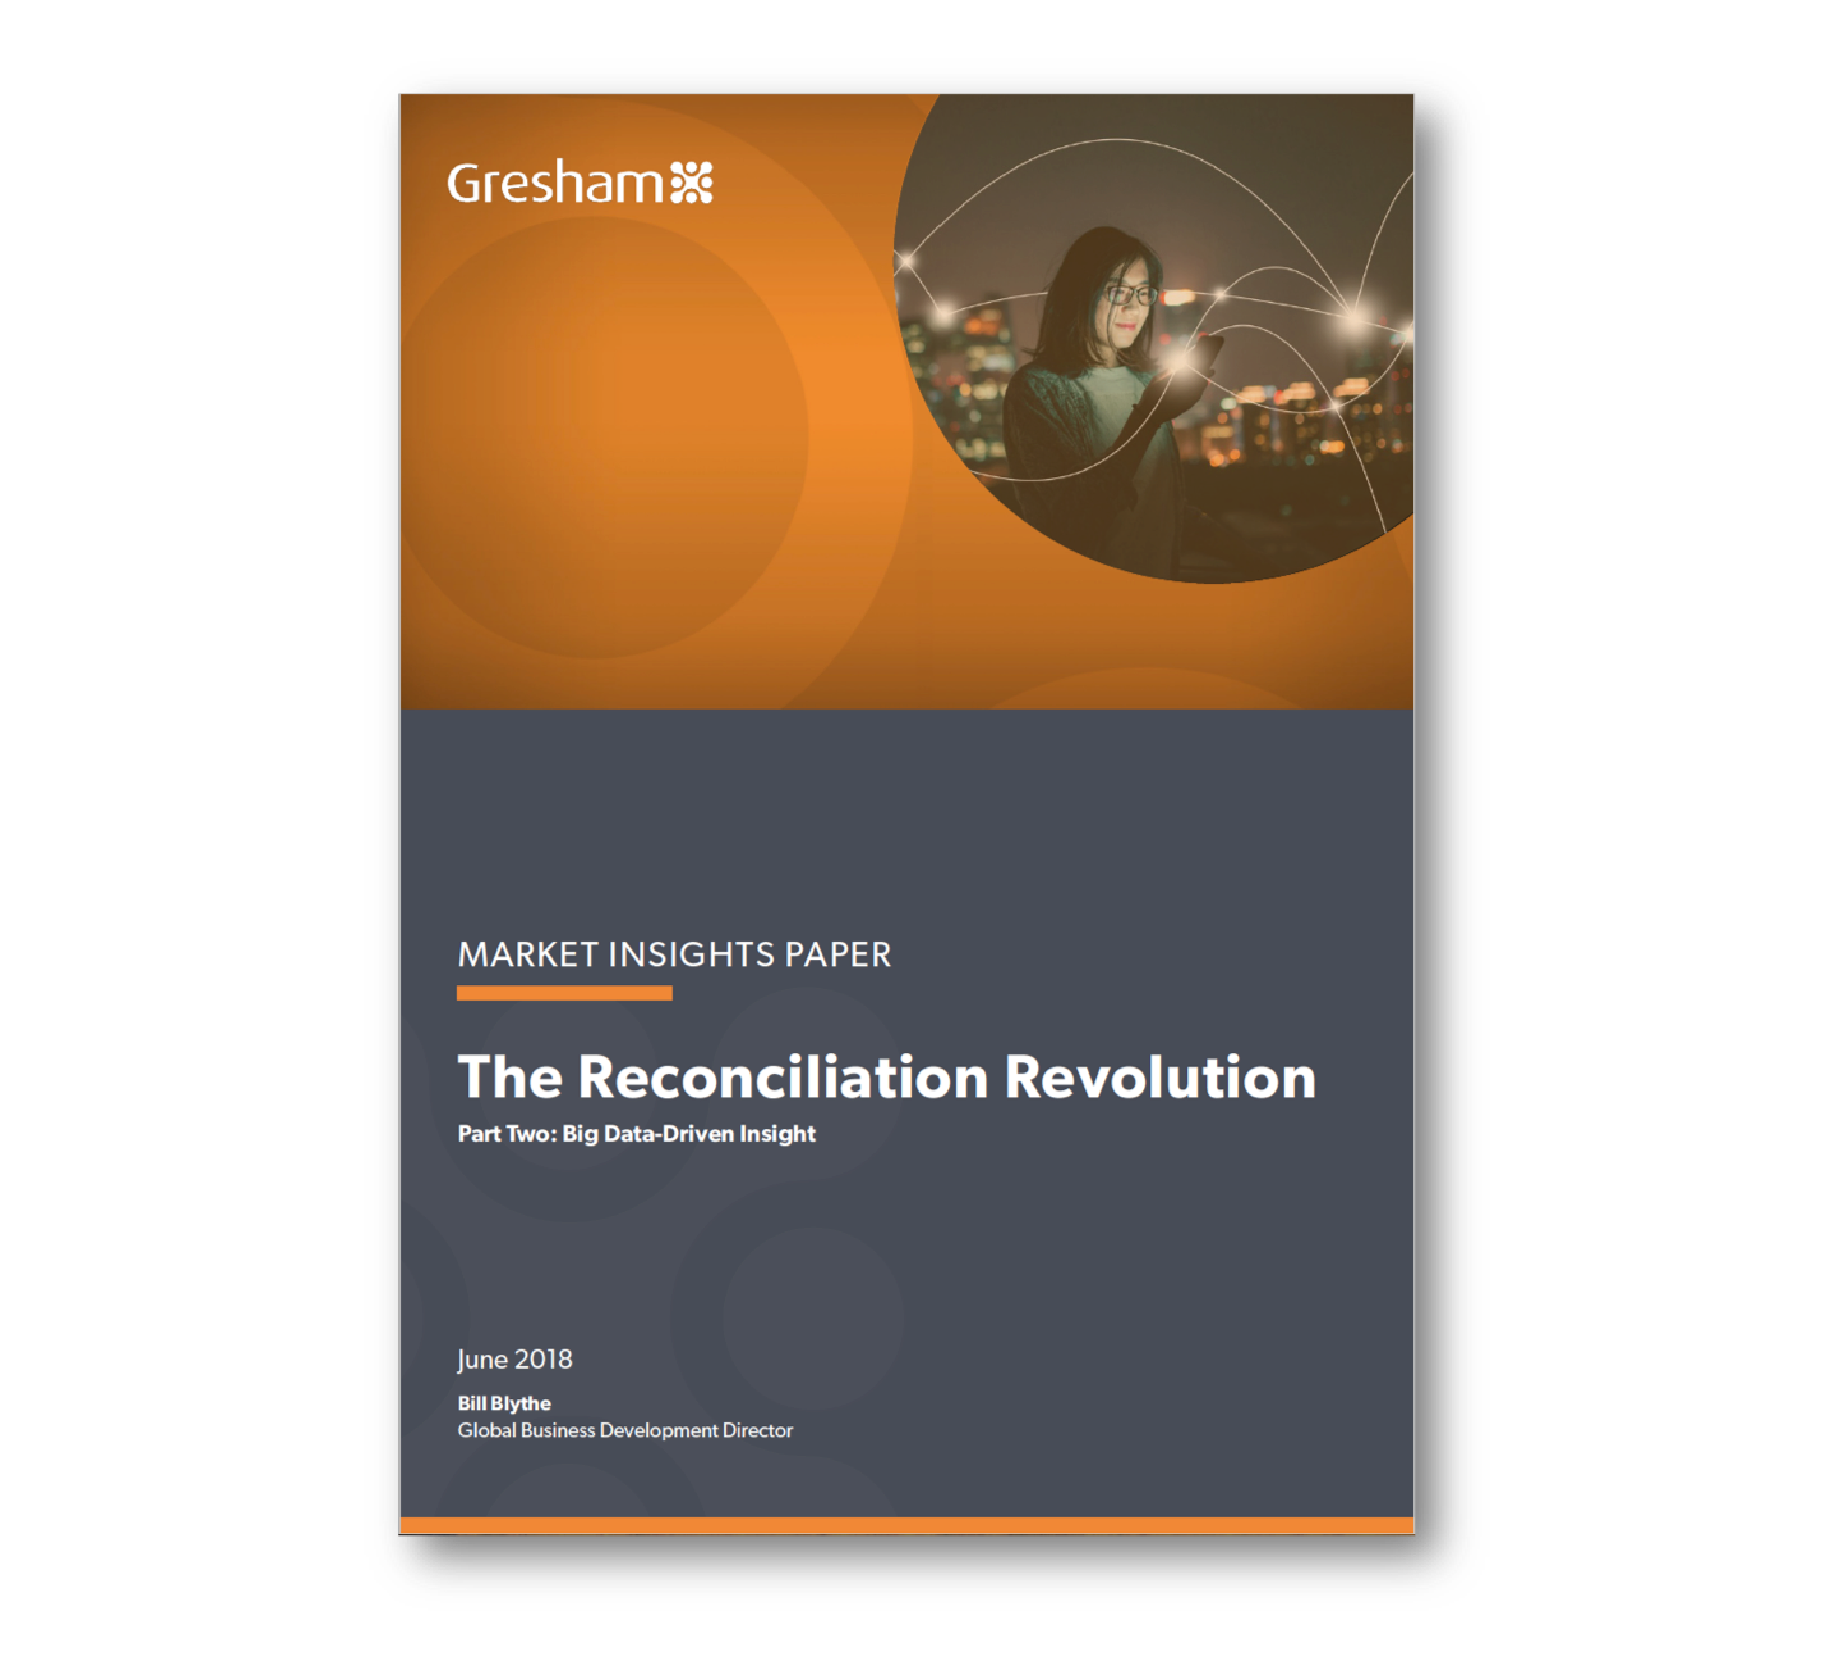 The Reconciliation Revolution - Part Two